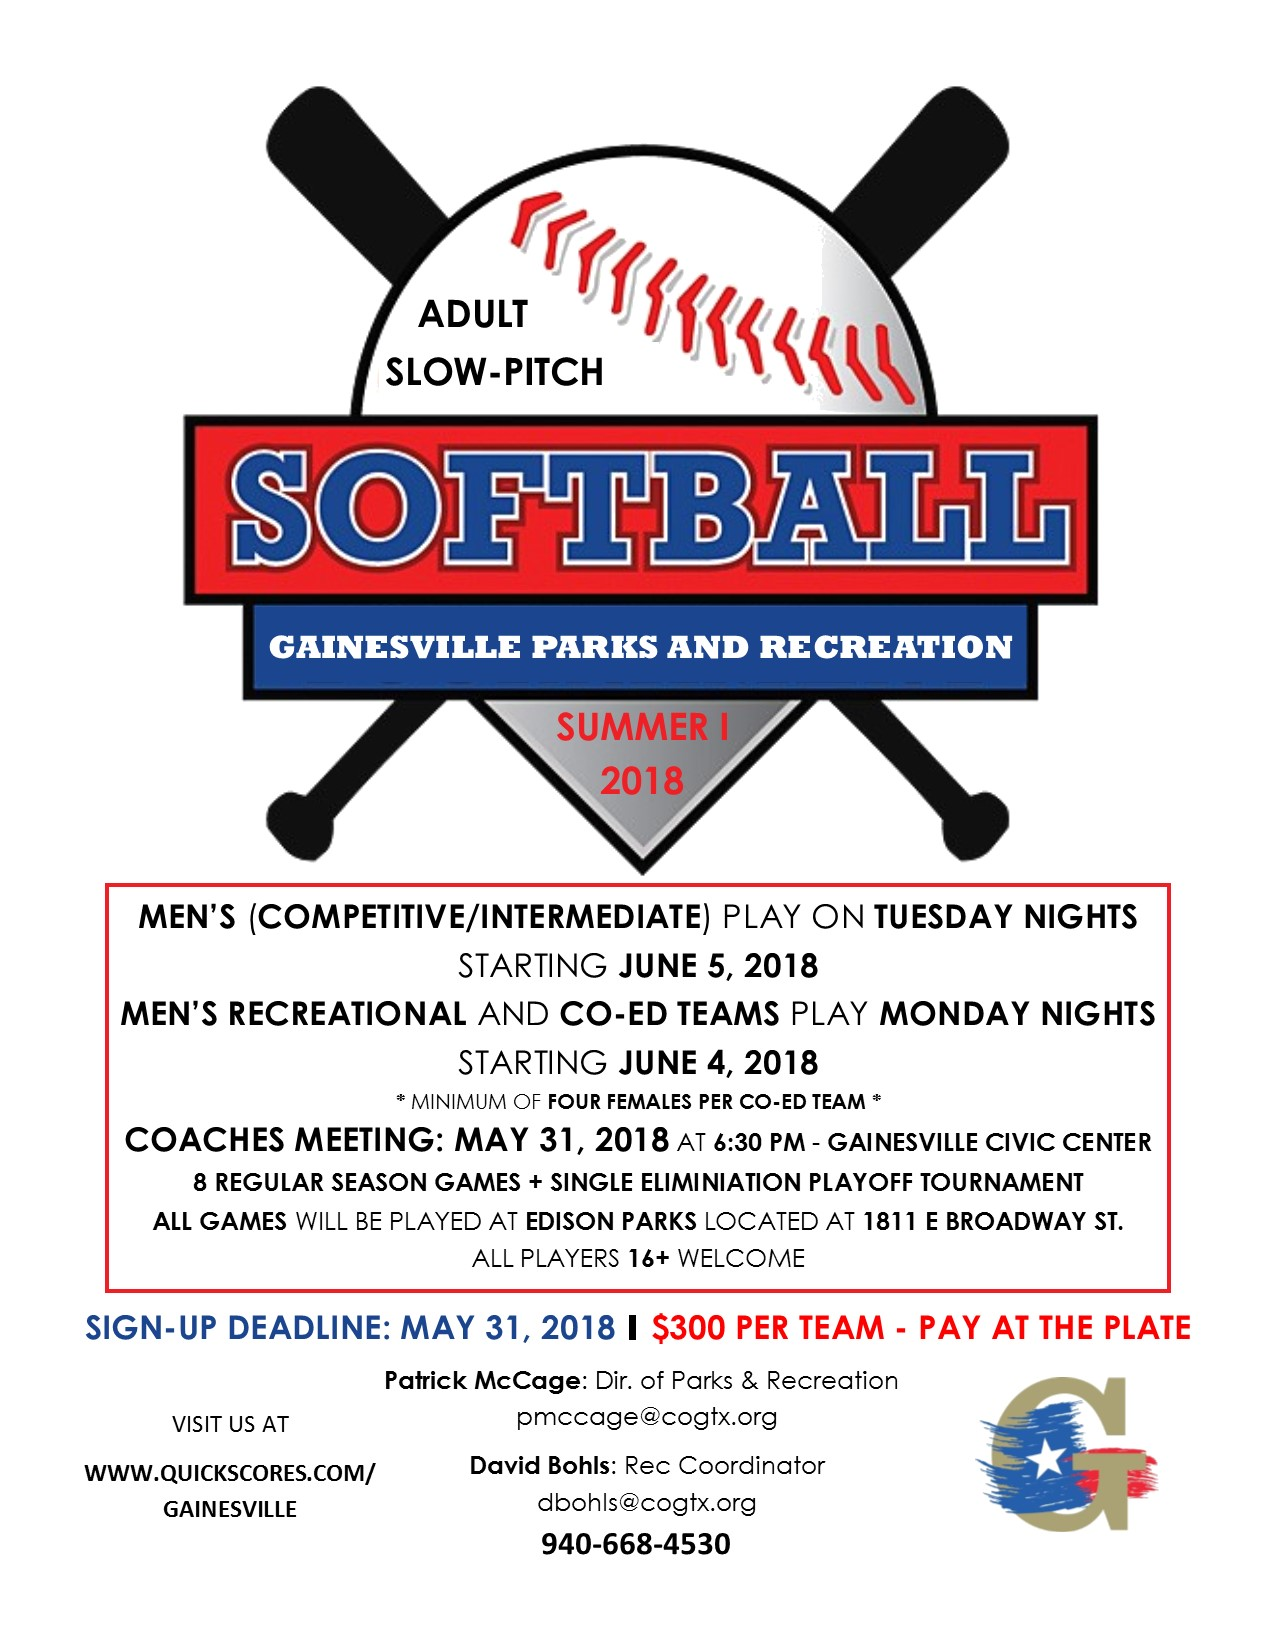 Summer 1 2018 SOFTBALL Flyer.jpg